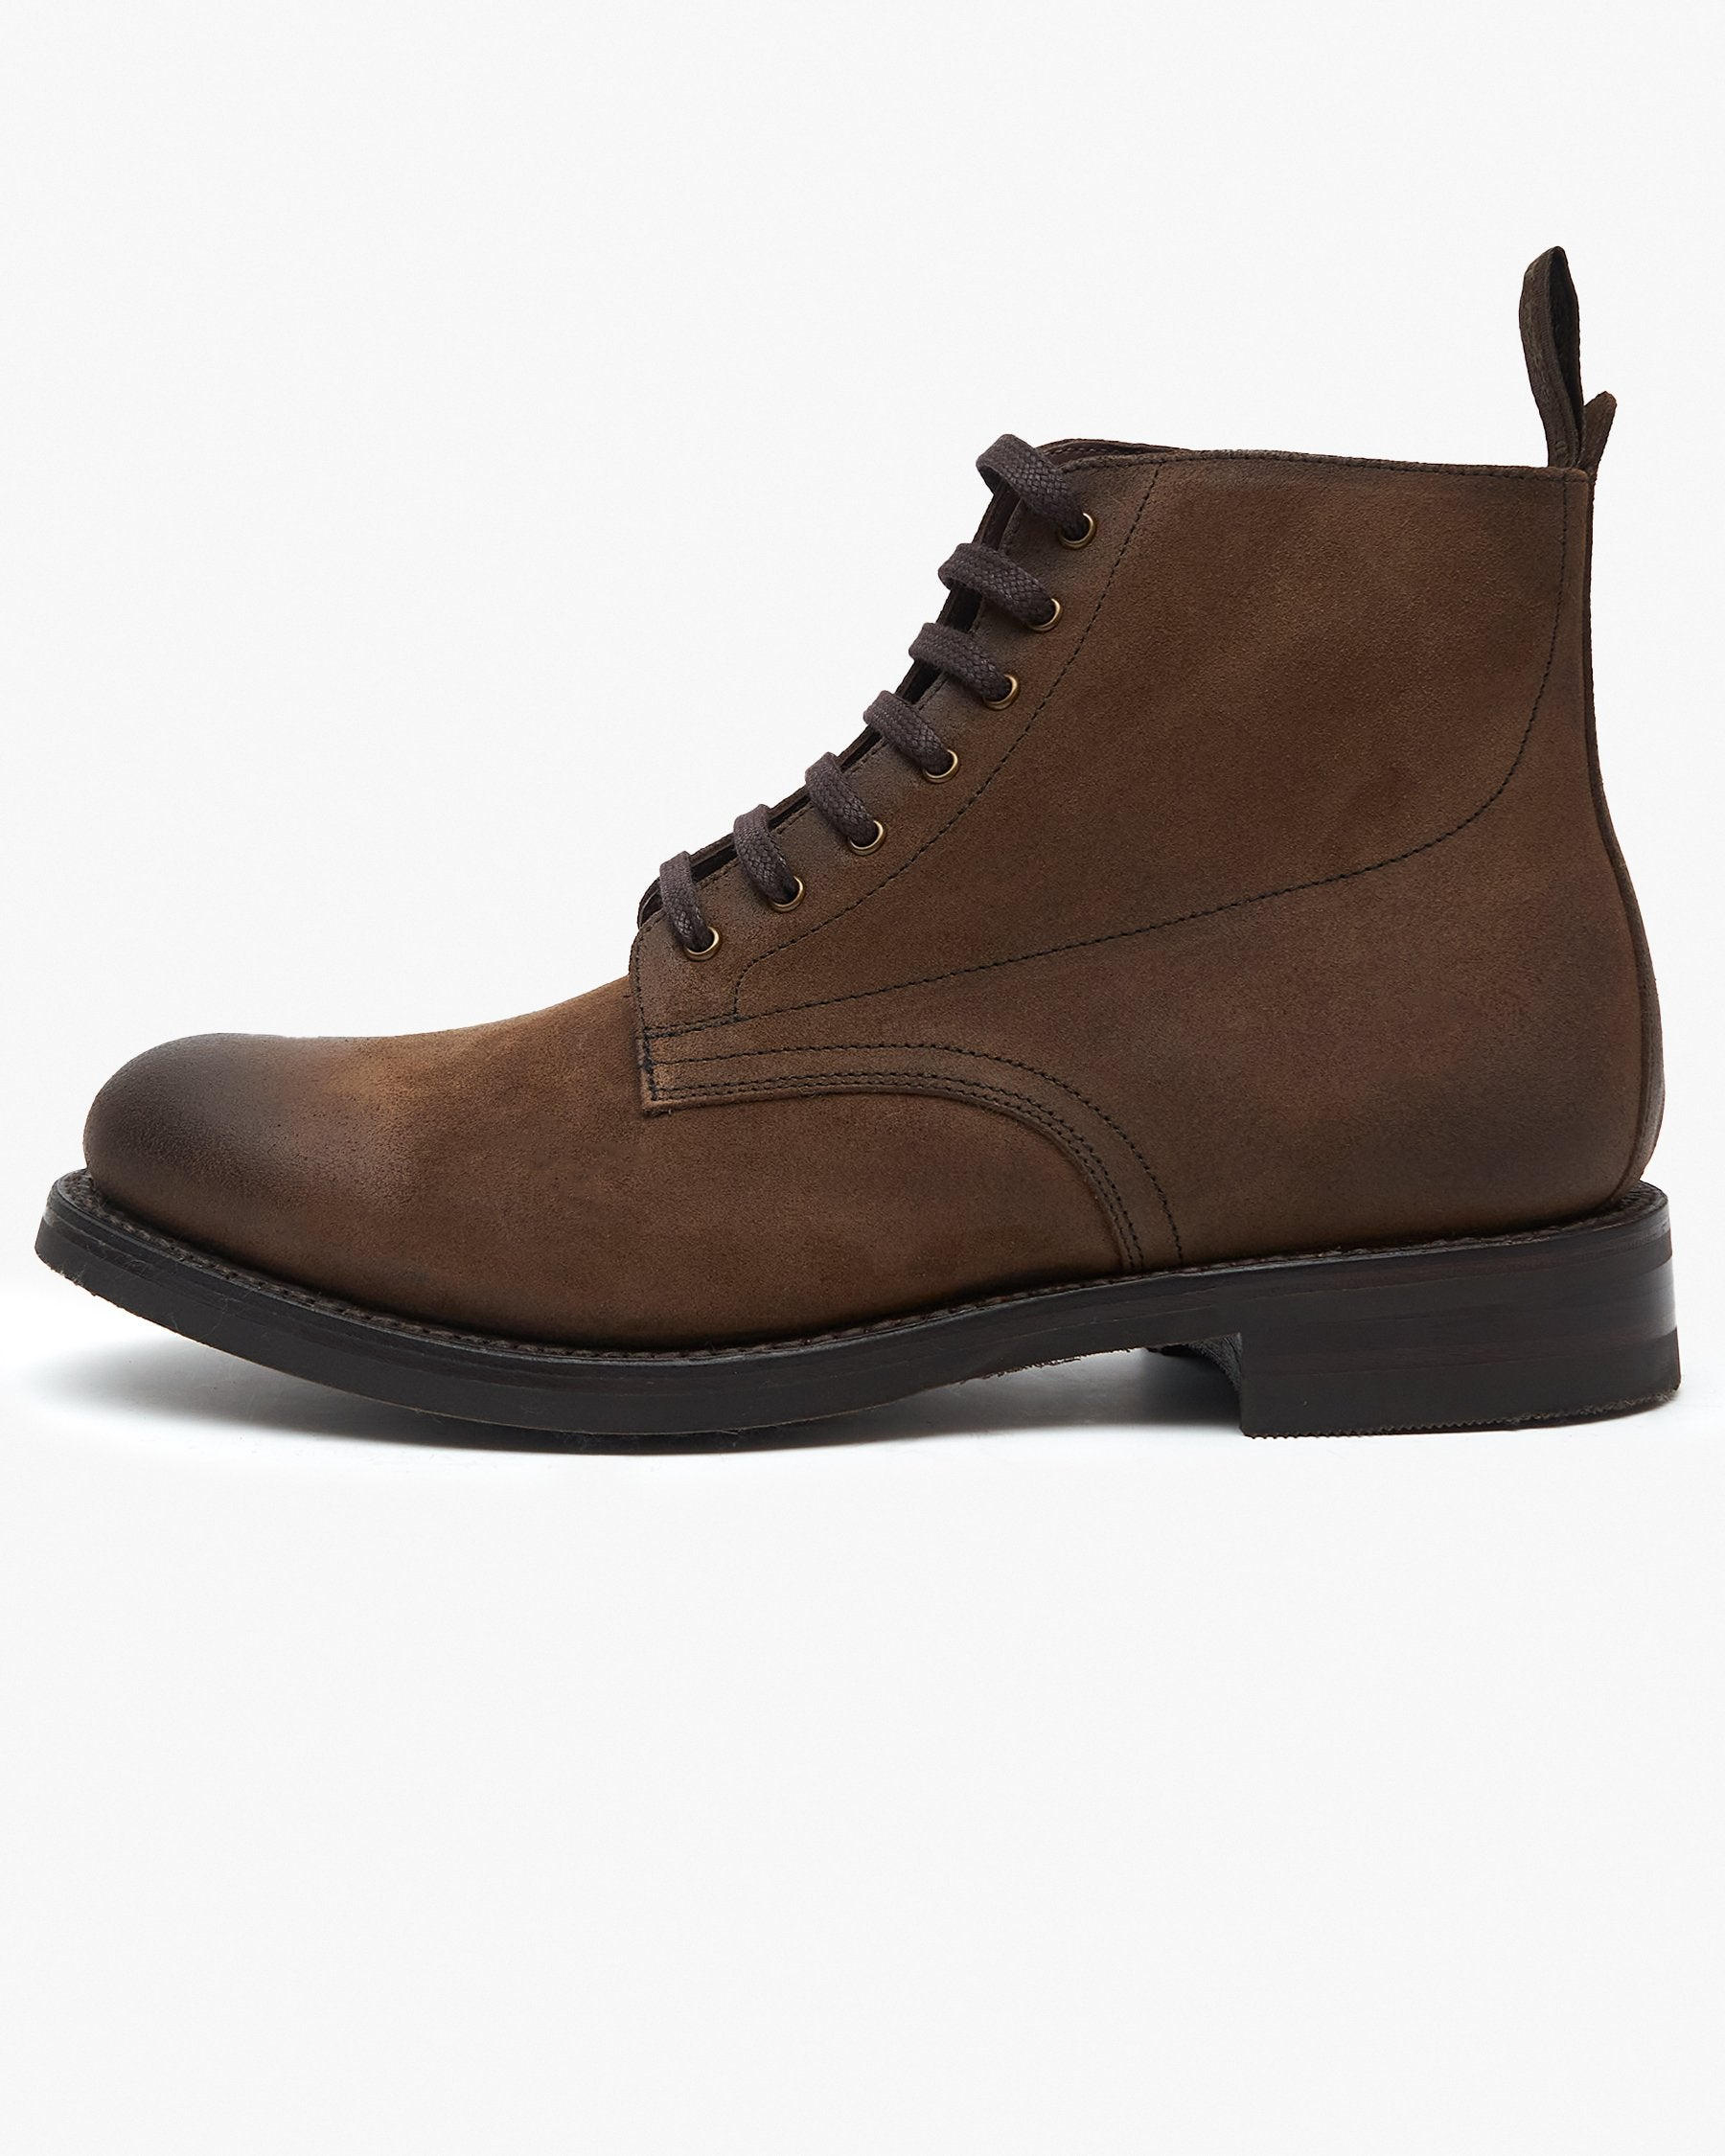 Loake Hebden Derby Boot - Brown Suede UK 7 HEBS7 5050362323007 Loake Shoemakers Boots